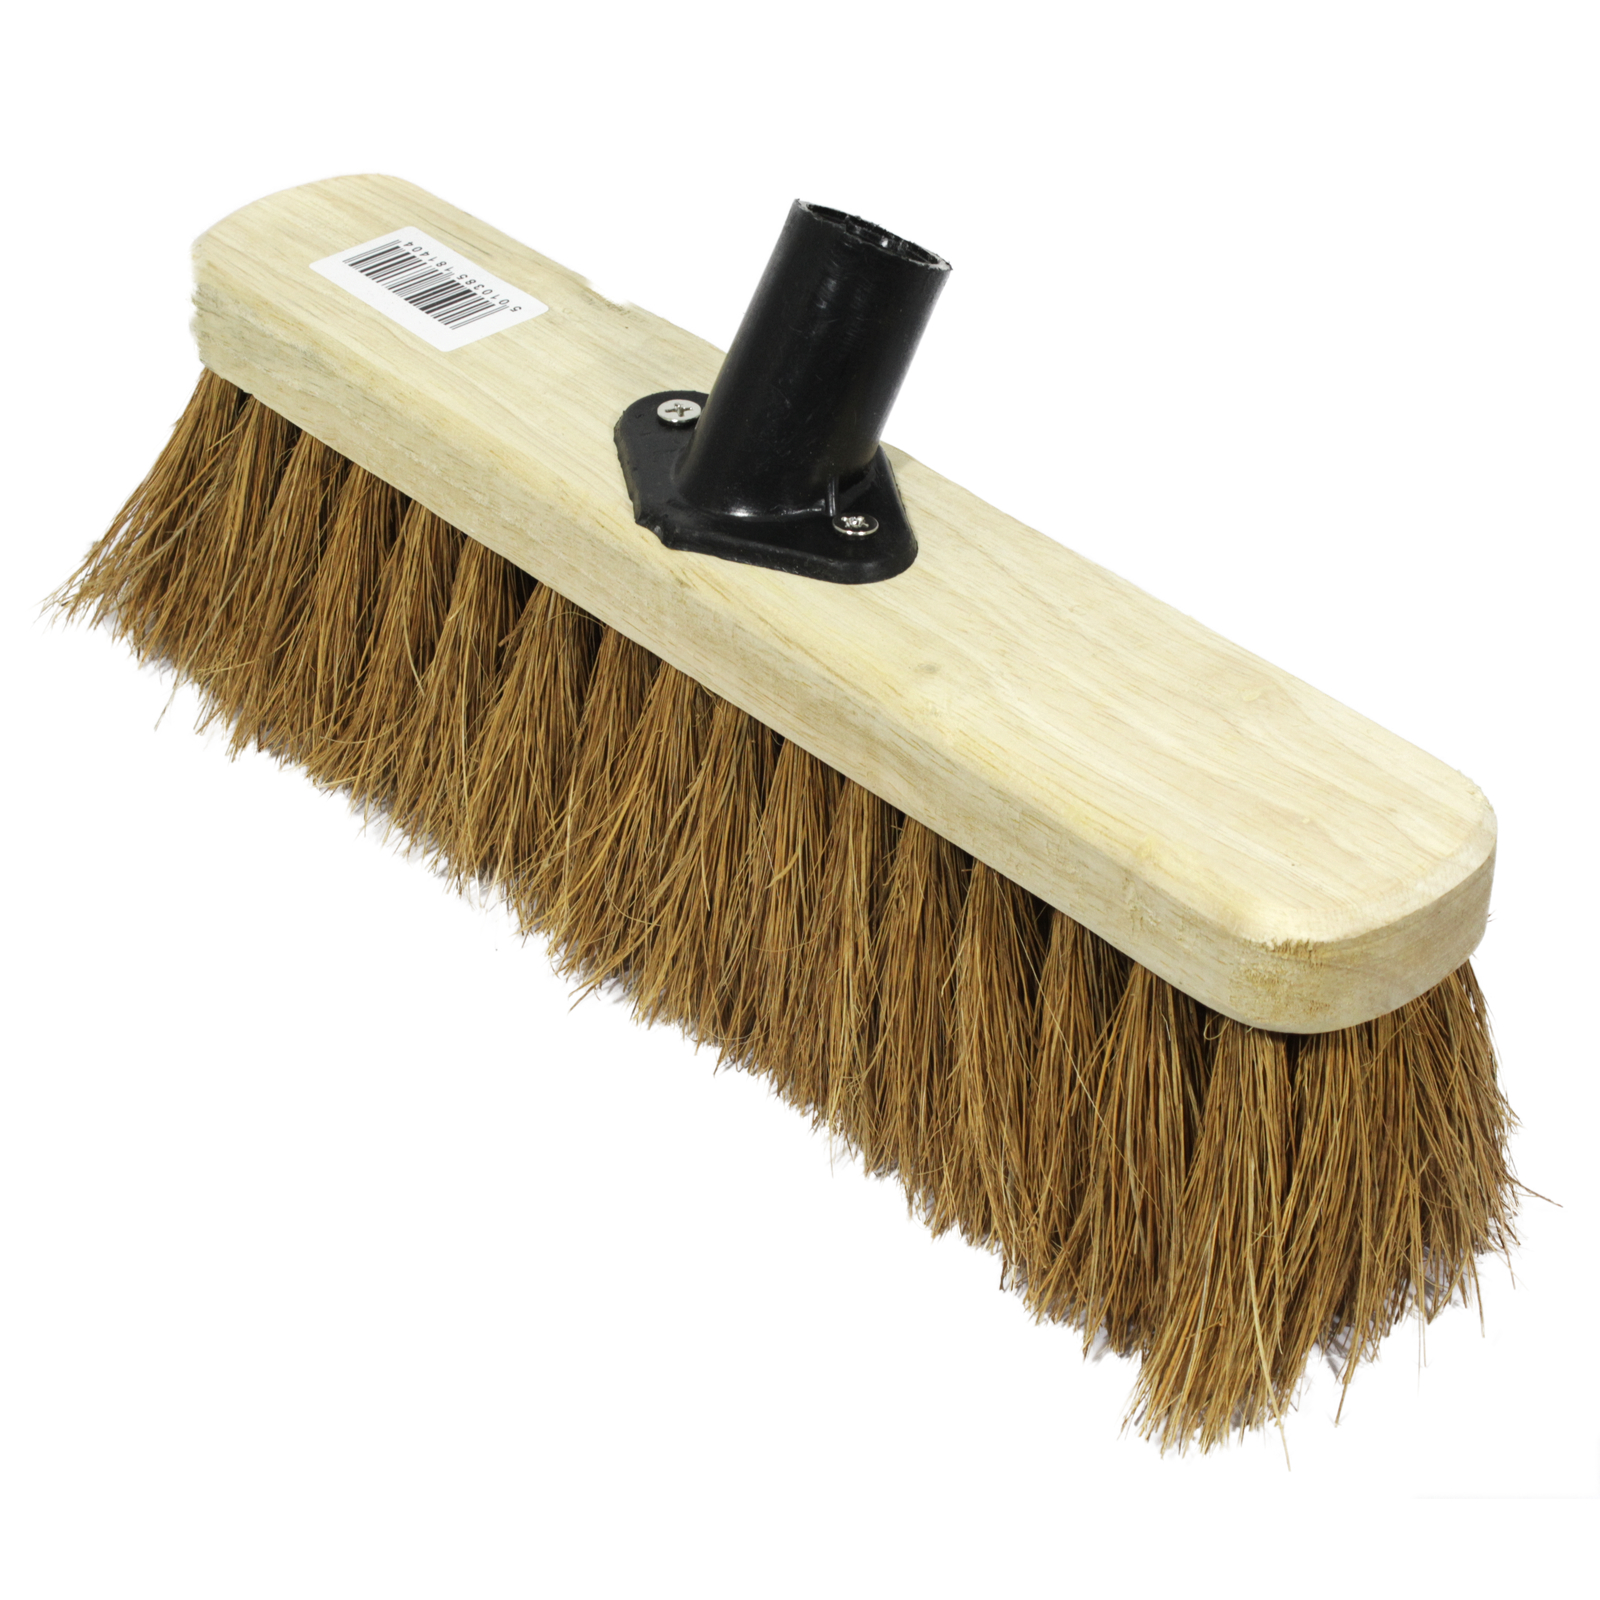 WOOD BROOM HEAD 12 COCO SOFT